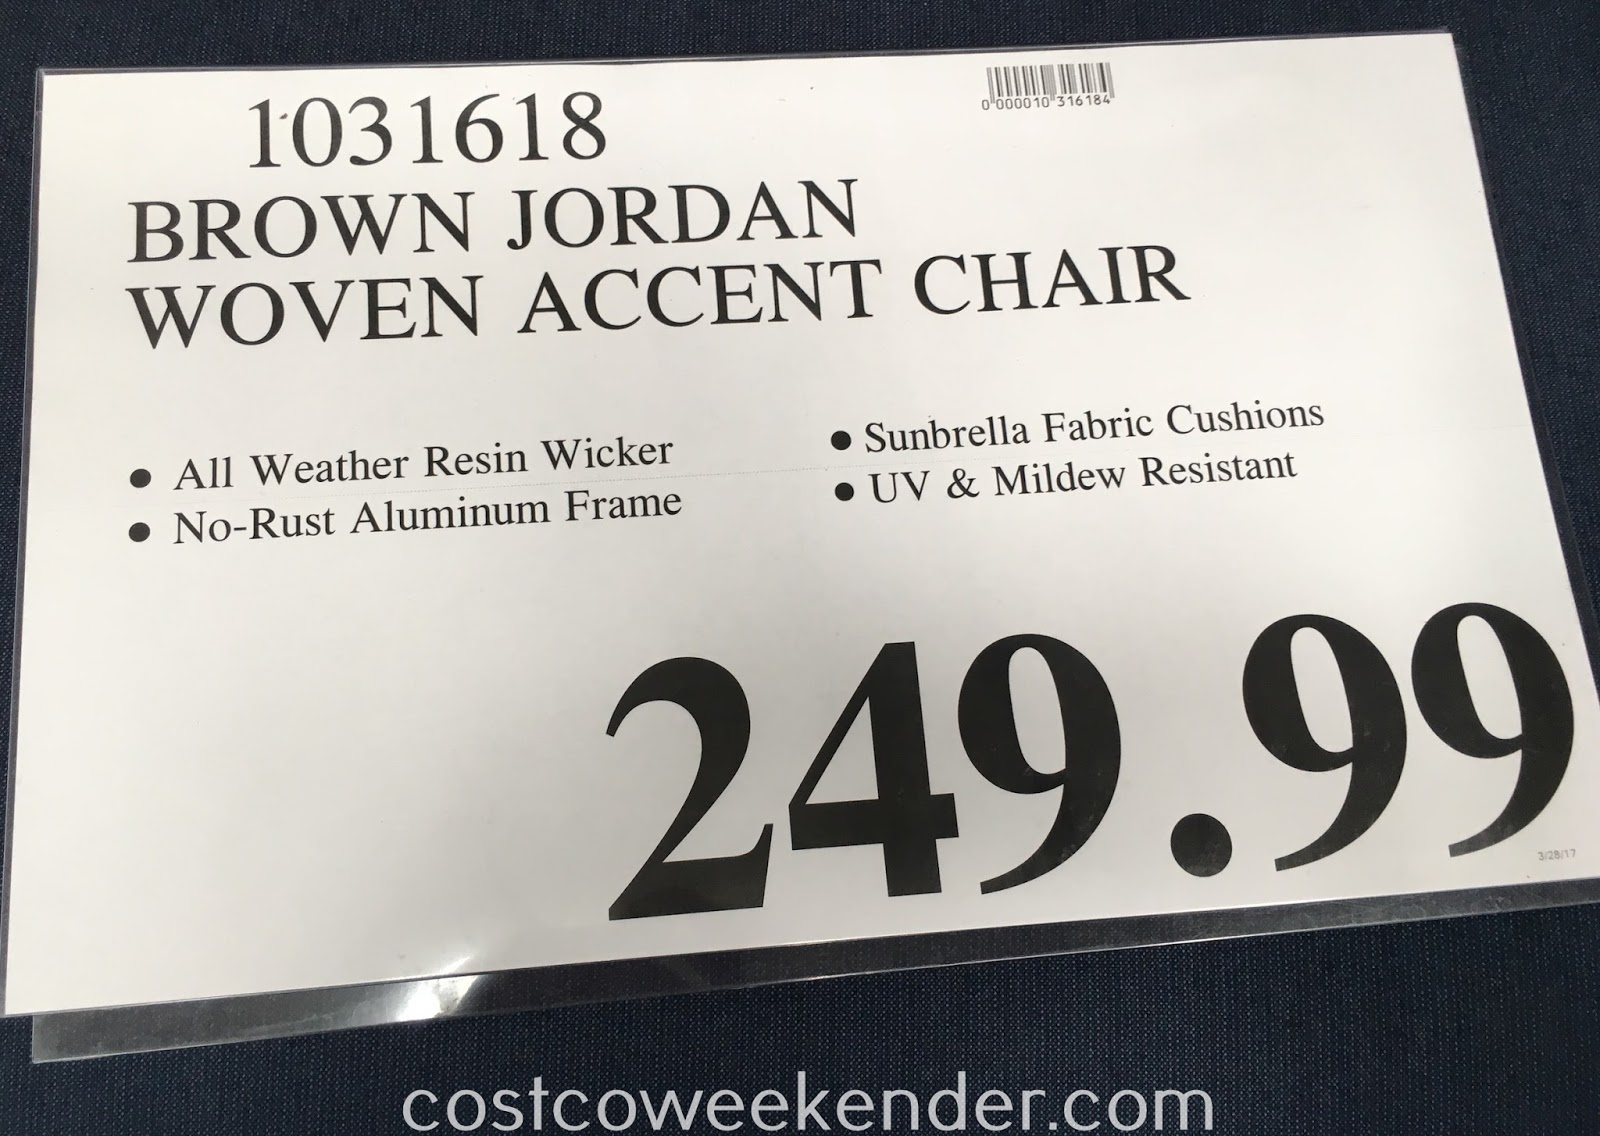 Super Brown Jordan Woven Accent Chair Costco Weekender Pabps2019 Chair Design Images Pabps2019Com